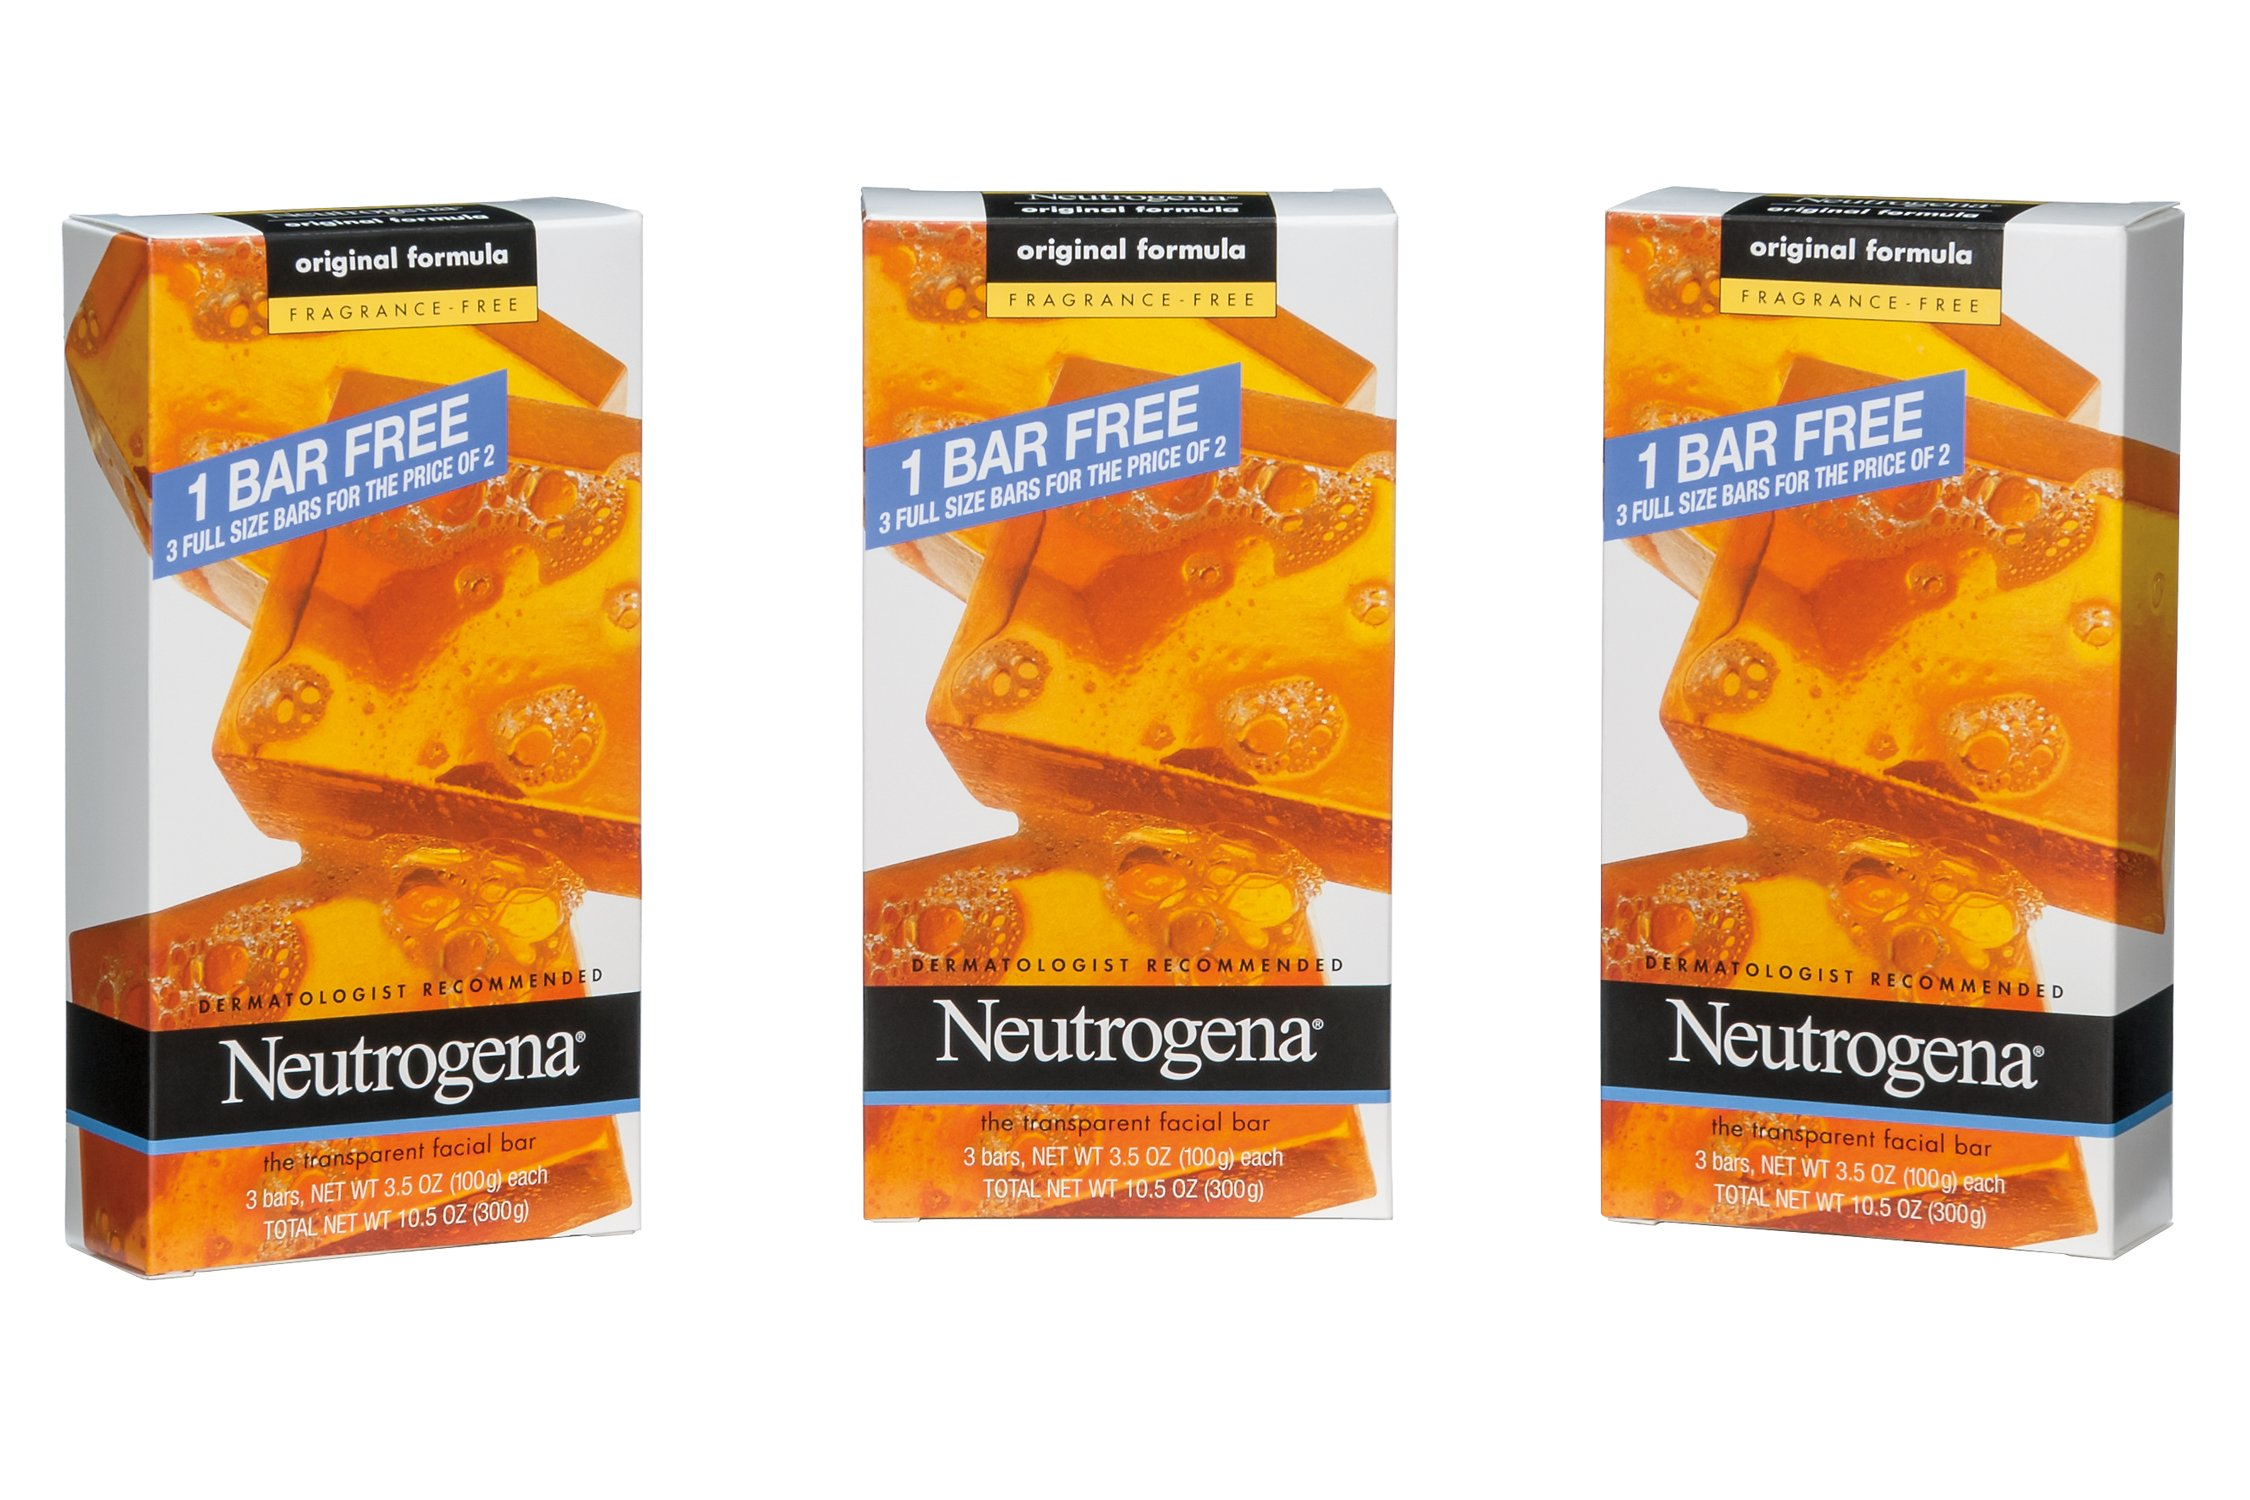 Neutrogena Transparent Facial Bar, Unscented Pack, 3.5 OZ, 3 Count (Pack of 6) by Neutrogena